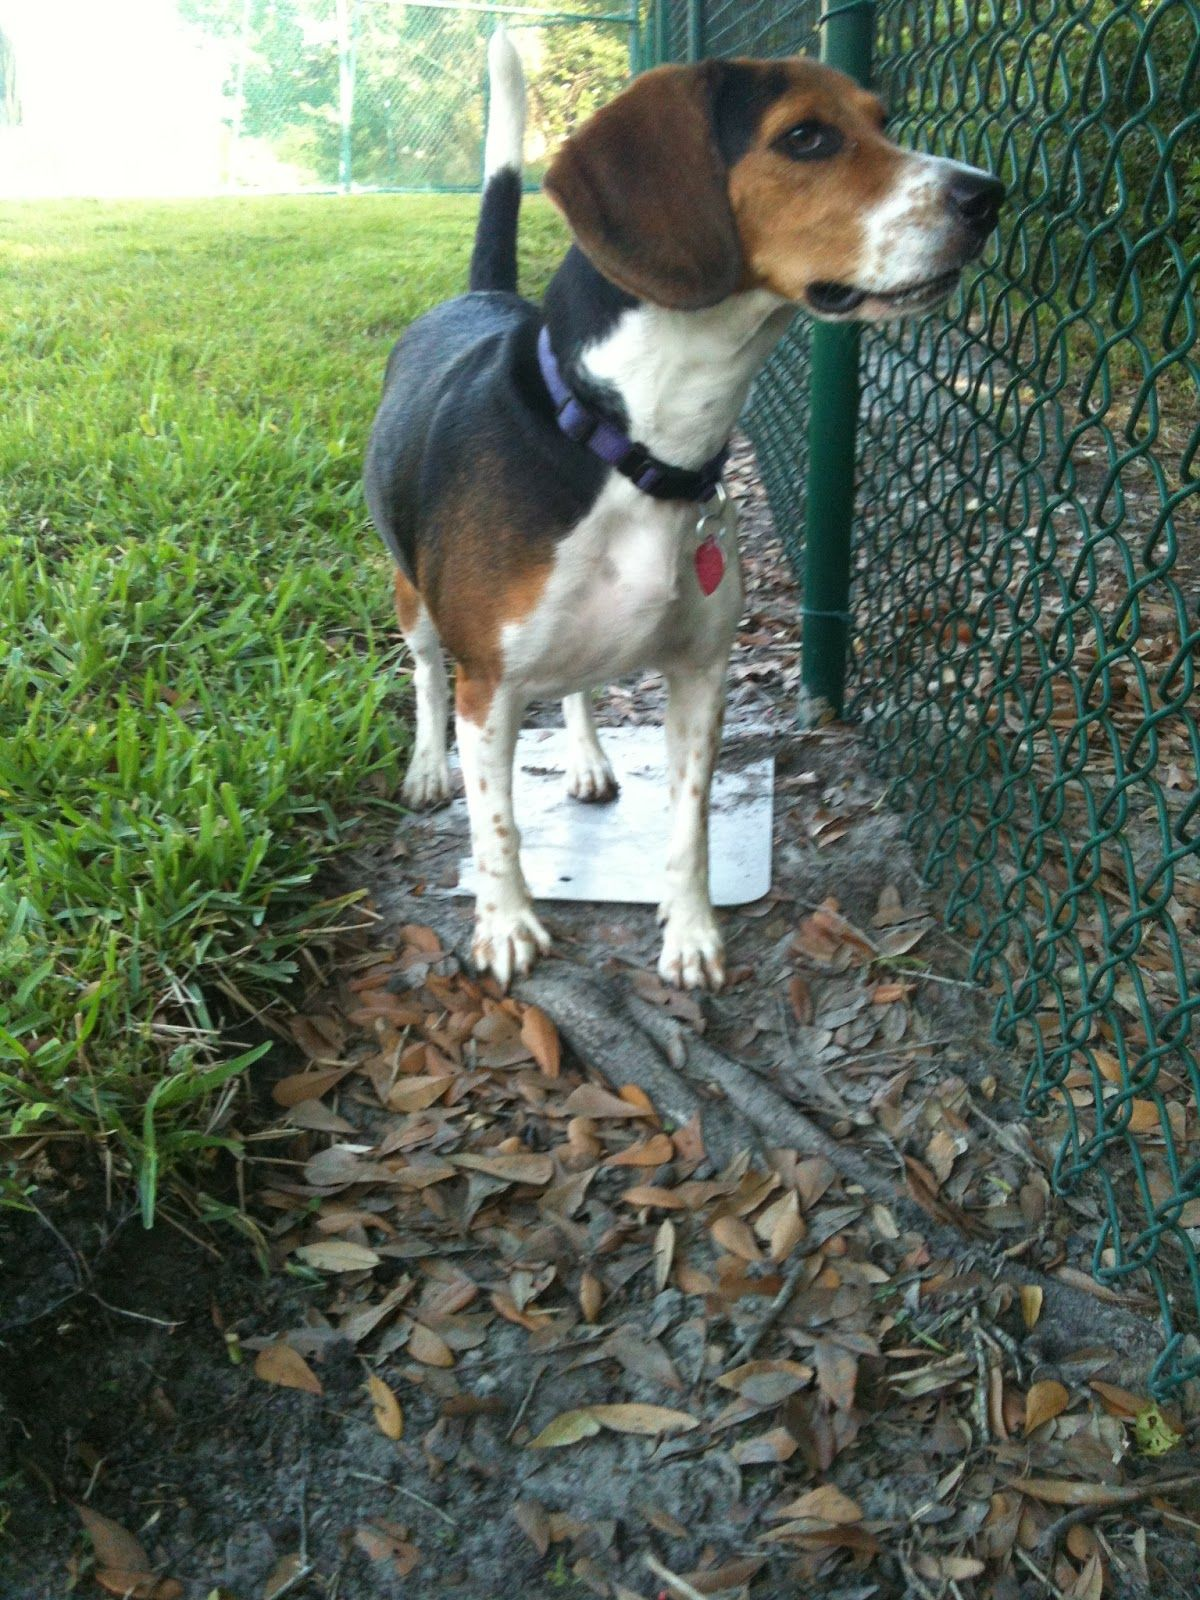 Beagles Are Utilized As Detection Dogs Within The Beagle Brigade